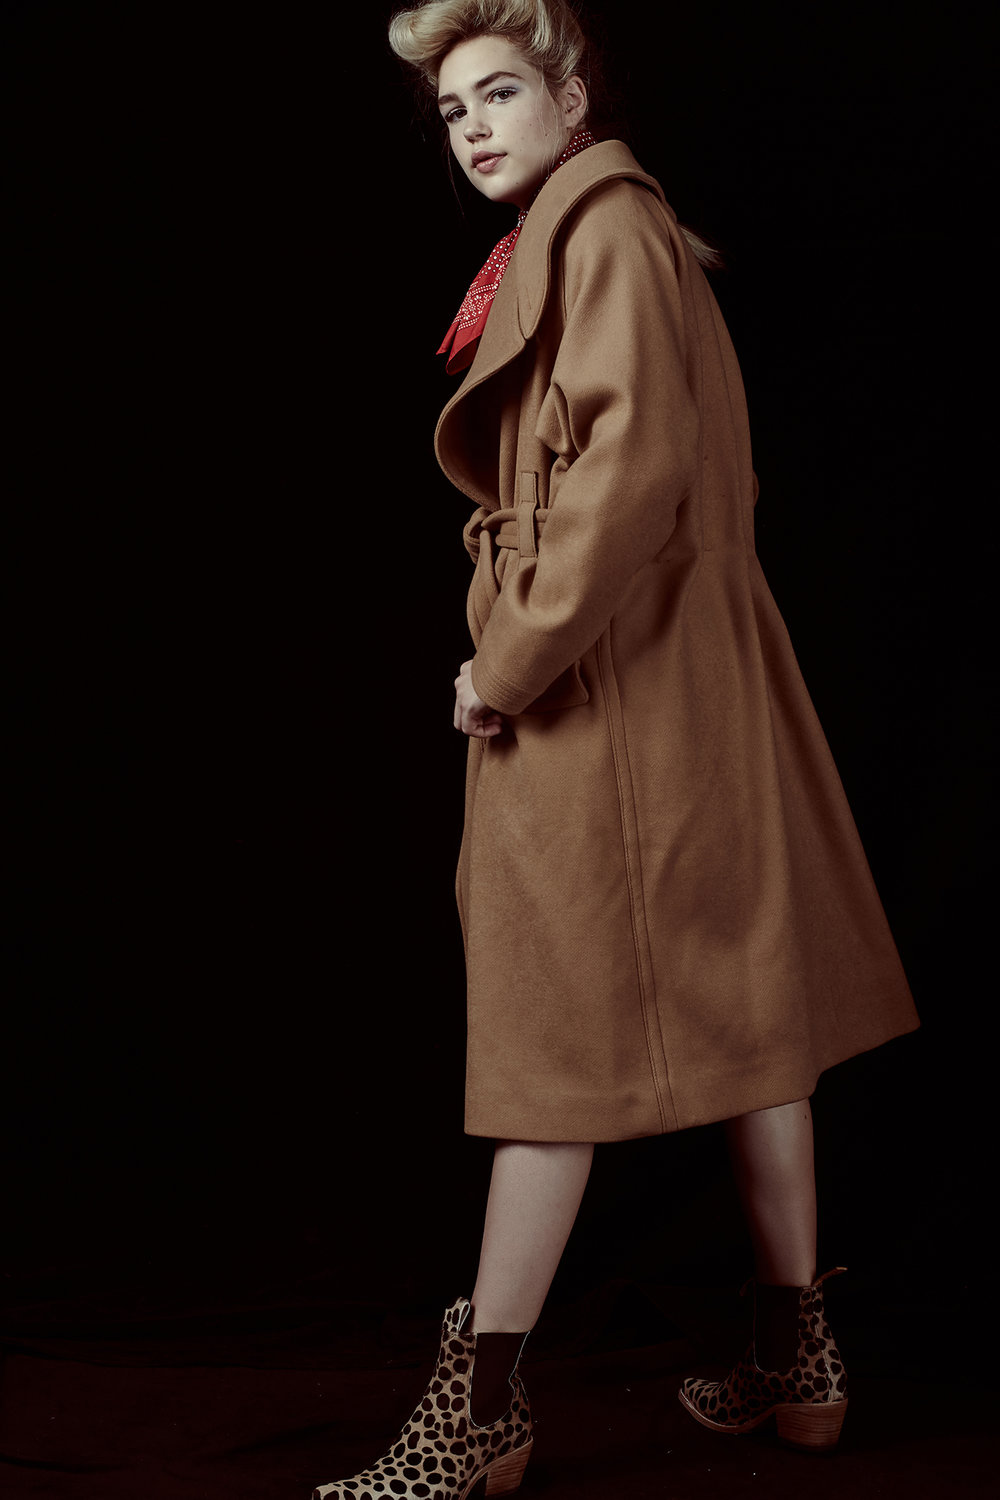 Coat by H&M, Boots by PSKaufman